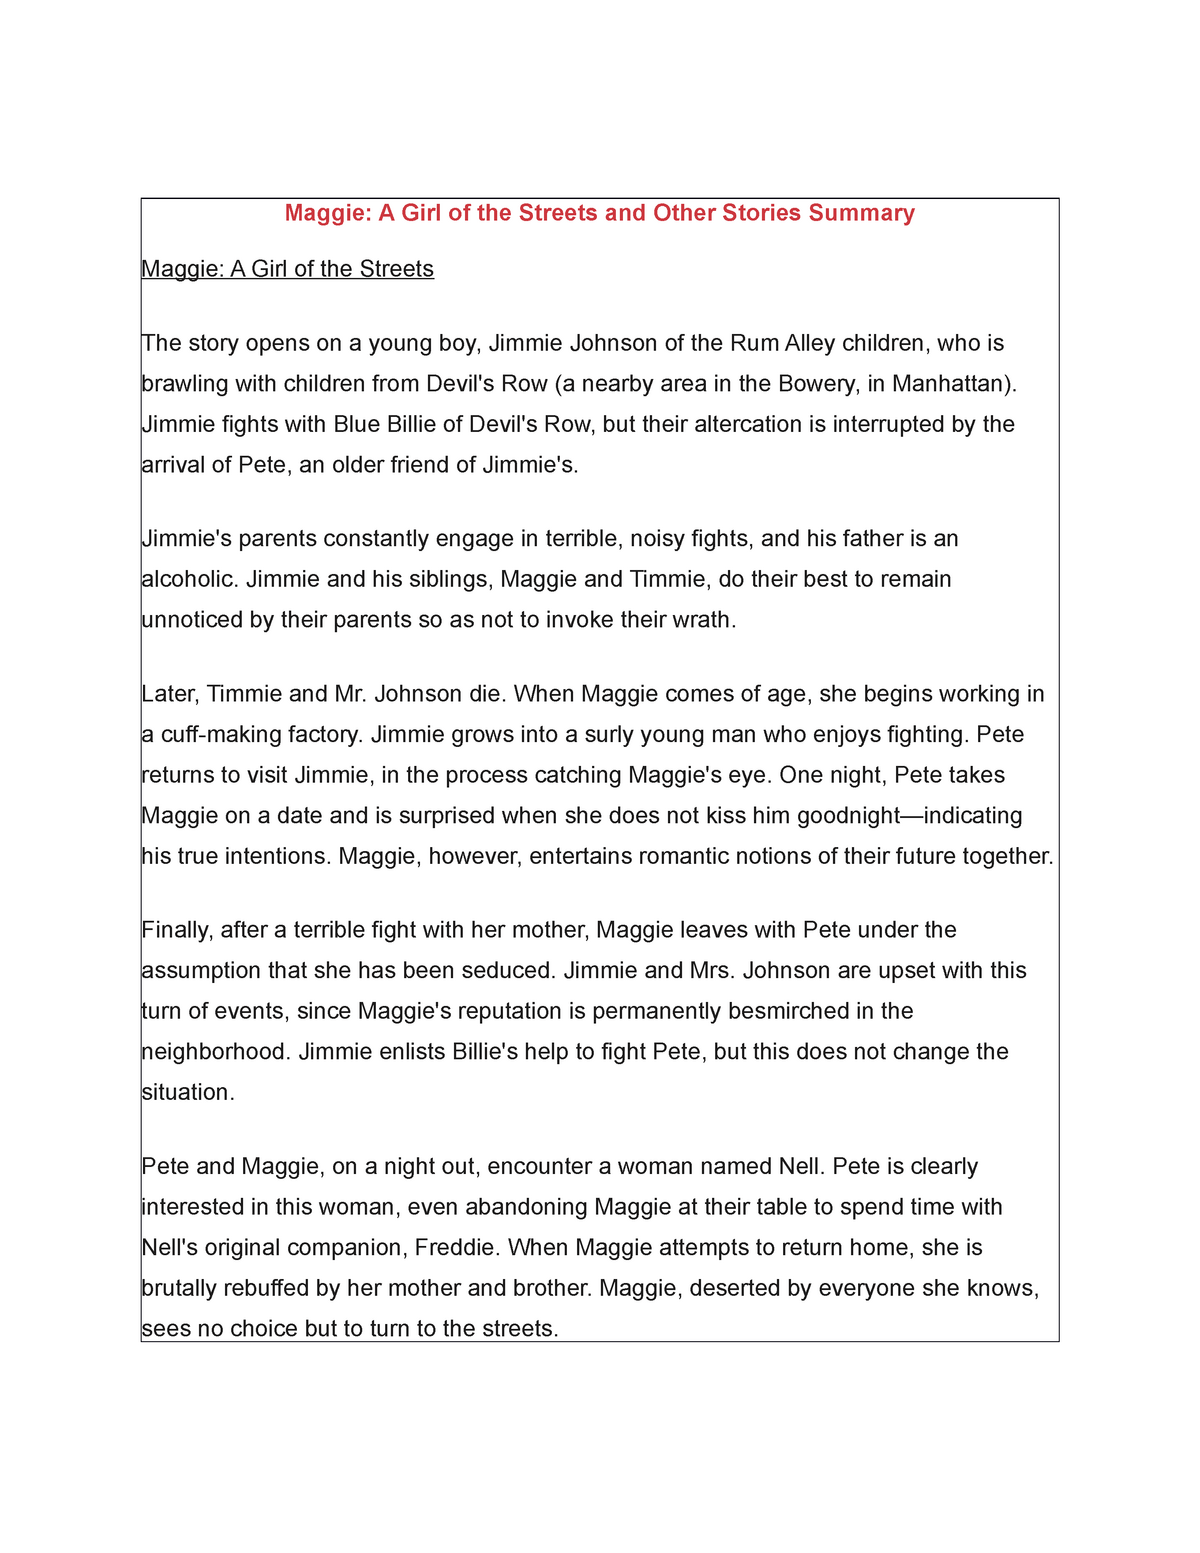 Maggie A Girl of the Streets and Other Stories Summary - StuDocu